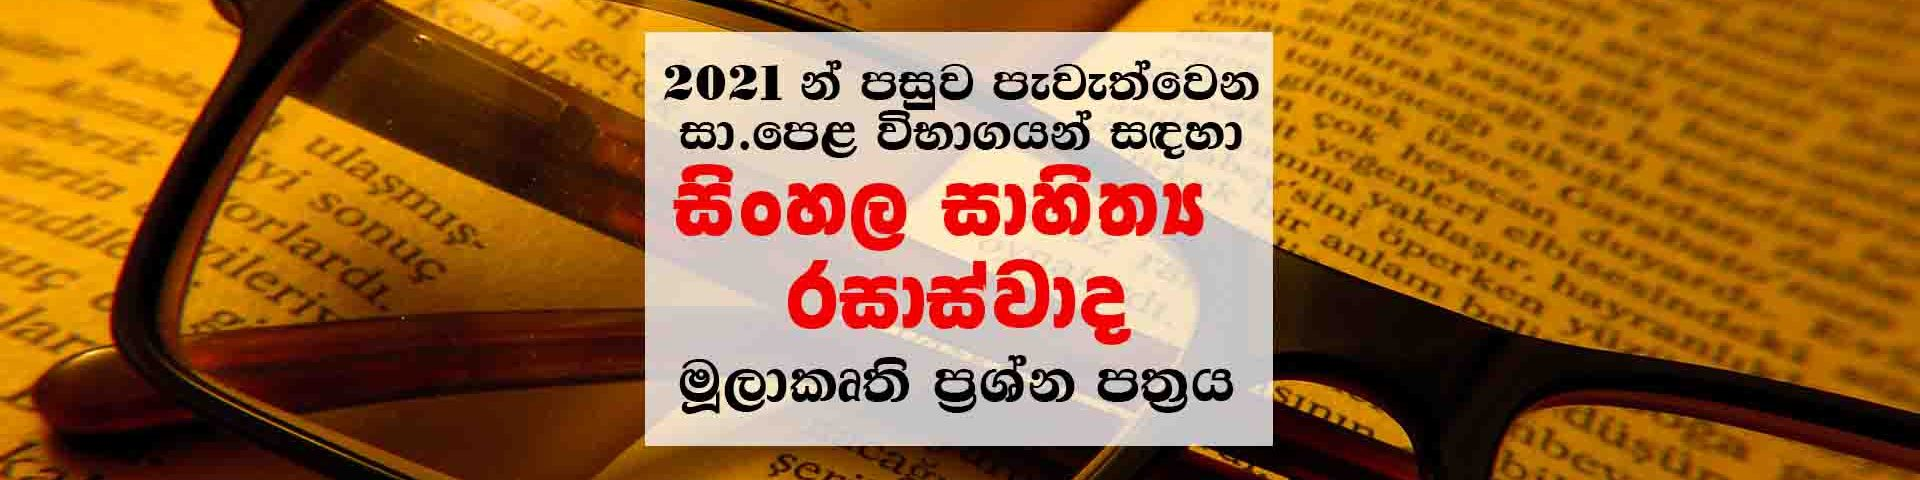 O/L Sinhala Literary Prototype Model Question Paper 2021 and onwards